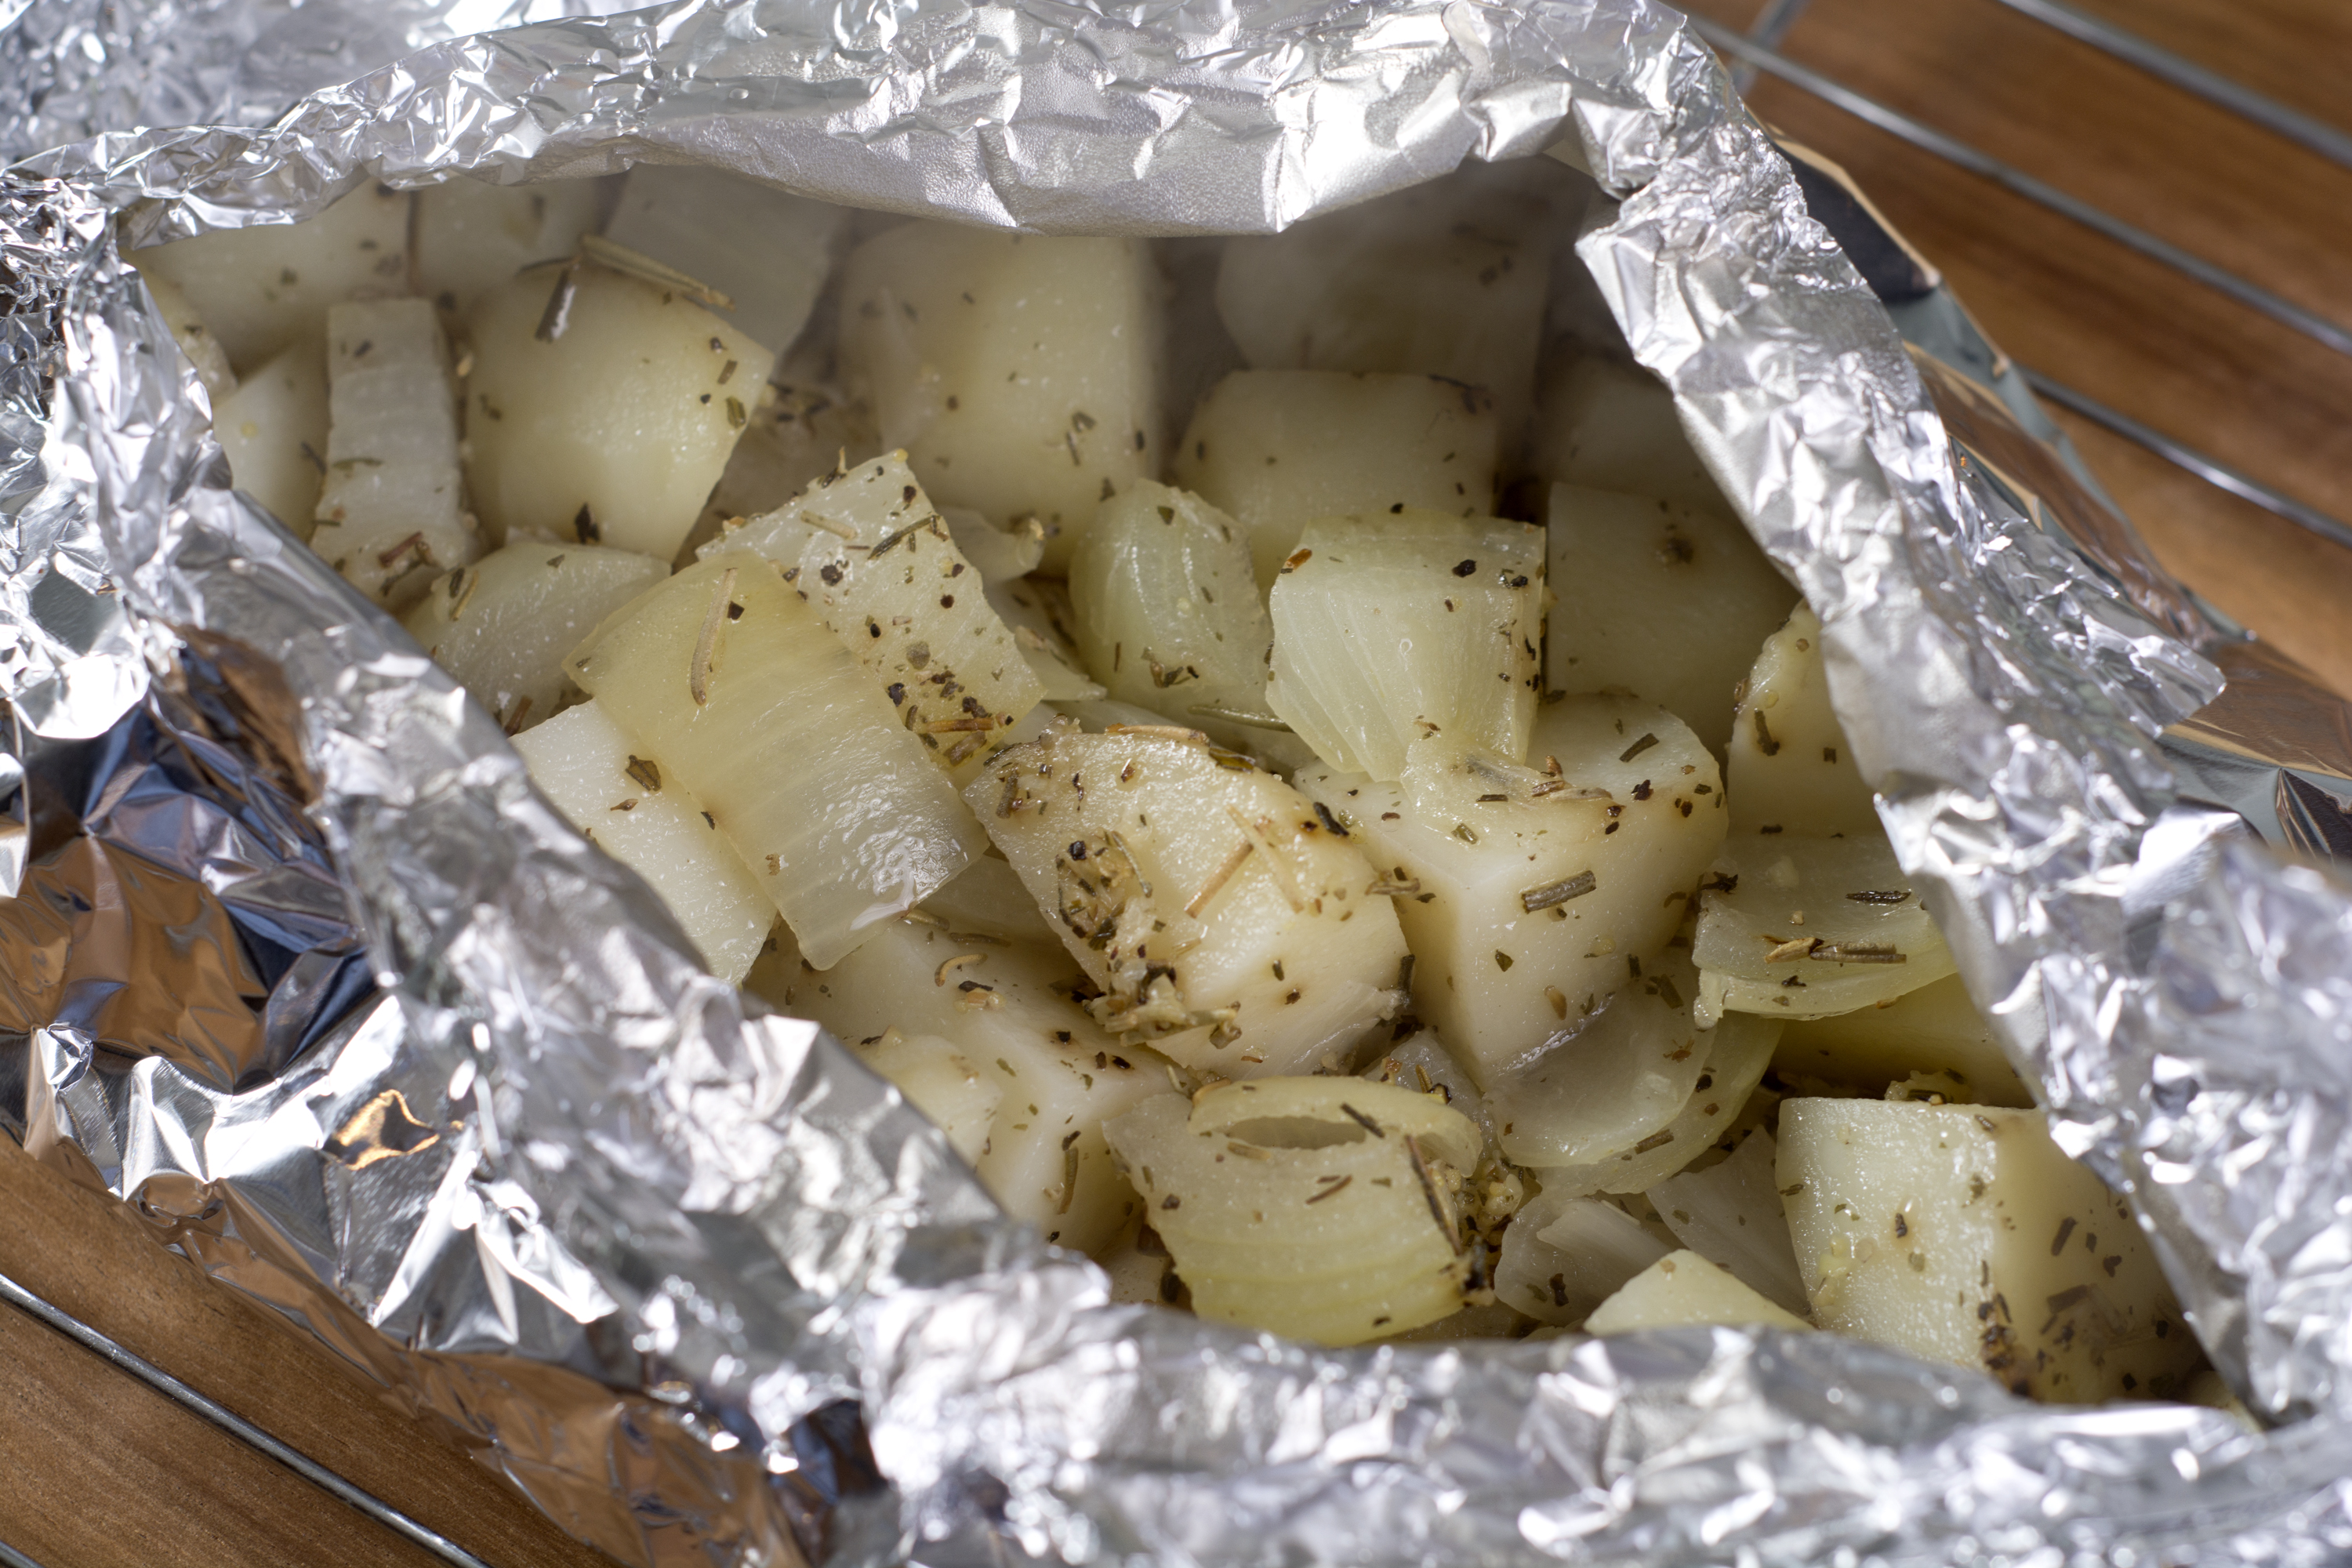 How To Bake Red Potatoes In An Aluminum Foil Packet For The Oven   Livestrong